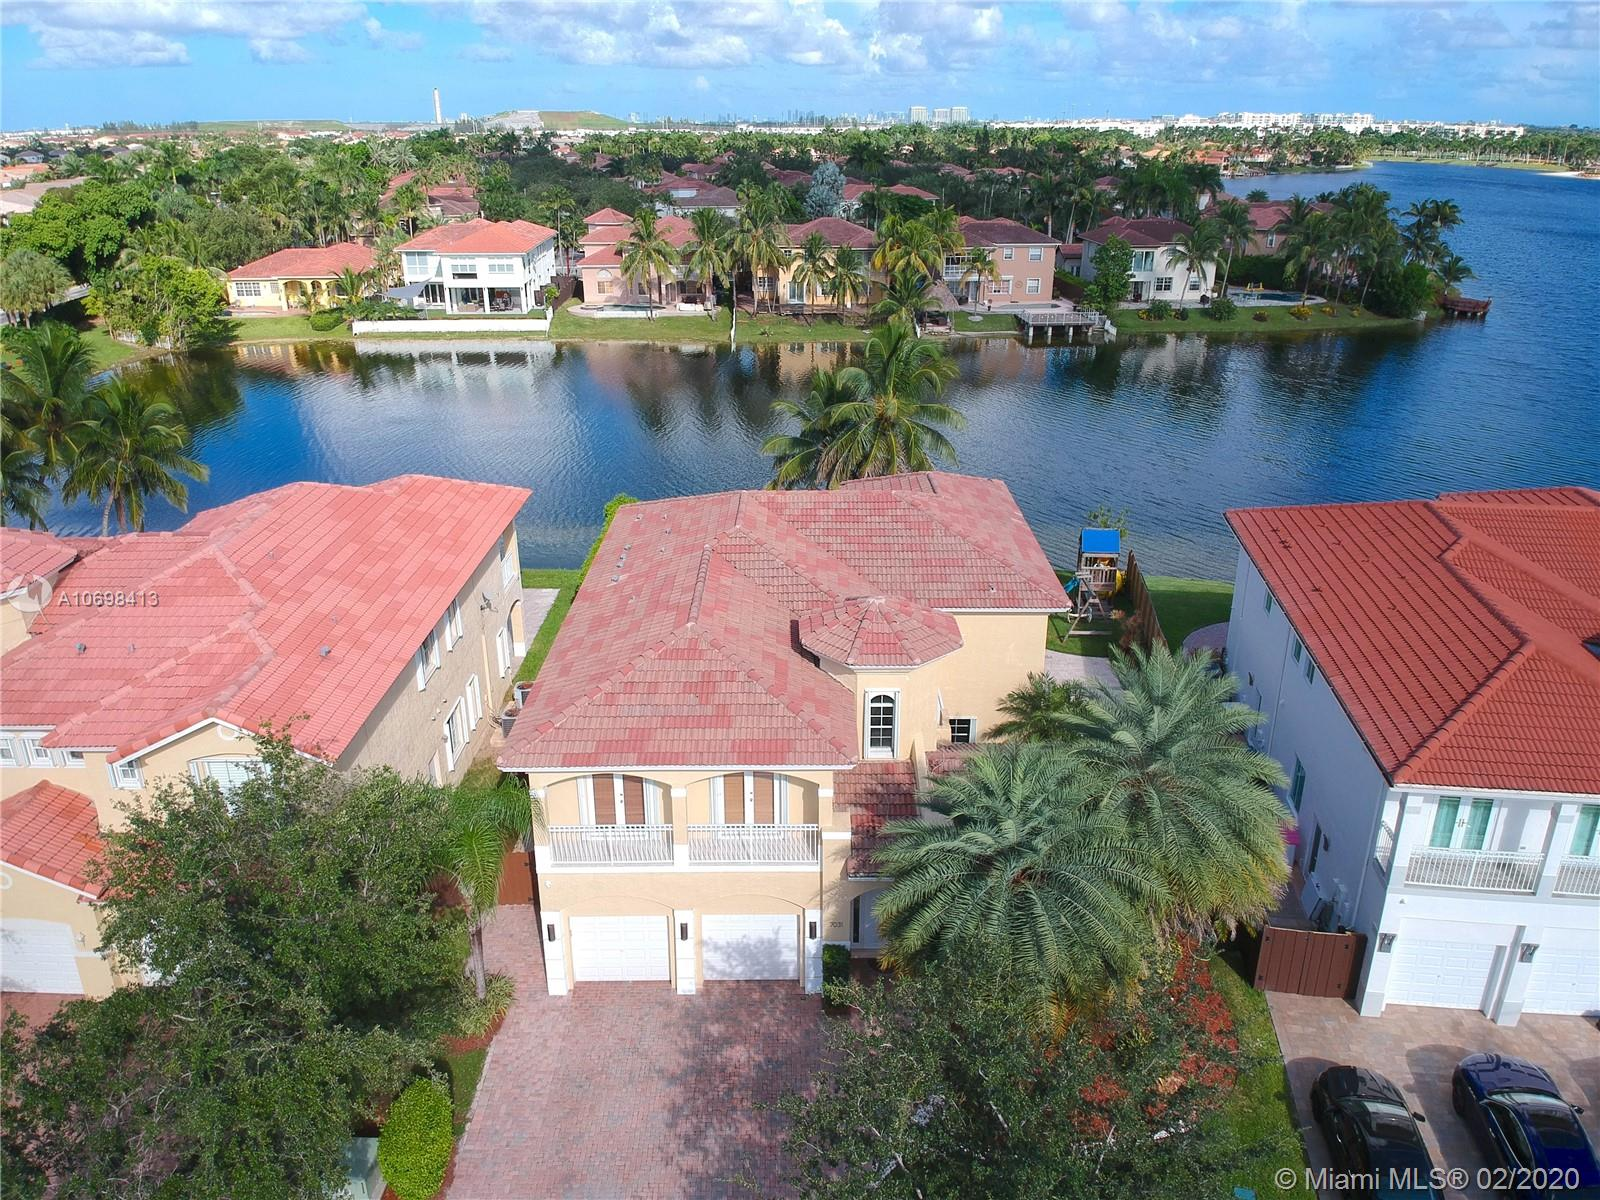 7031 NW 113th Ct, Doral in Miami-dade County County, FL 33178 Home for Sale